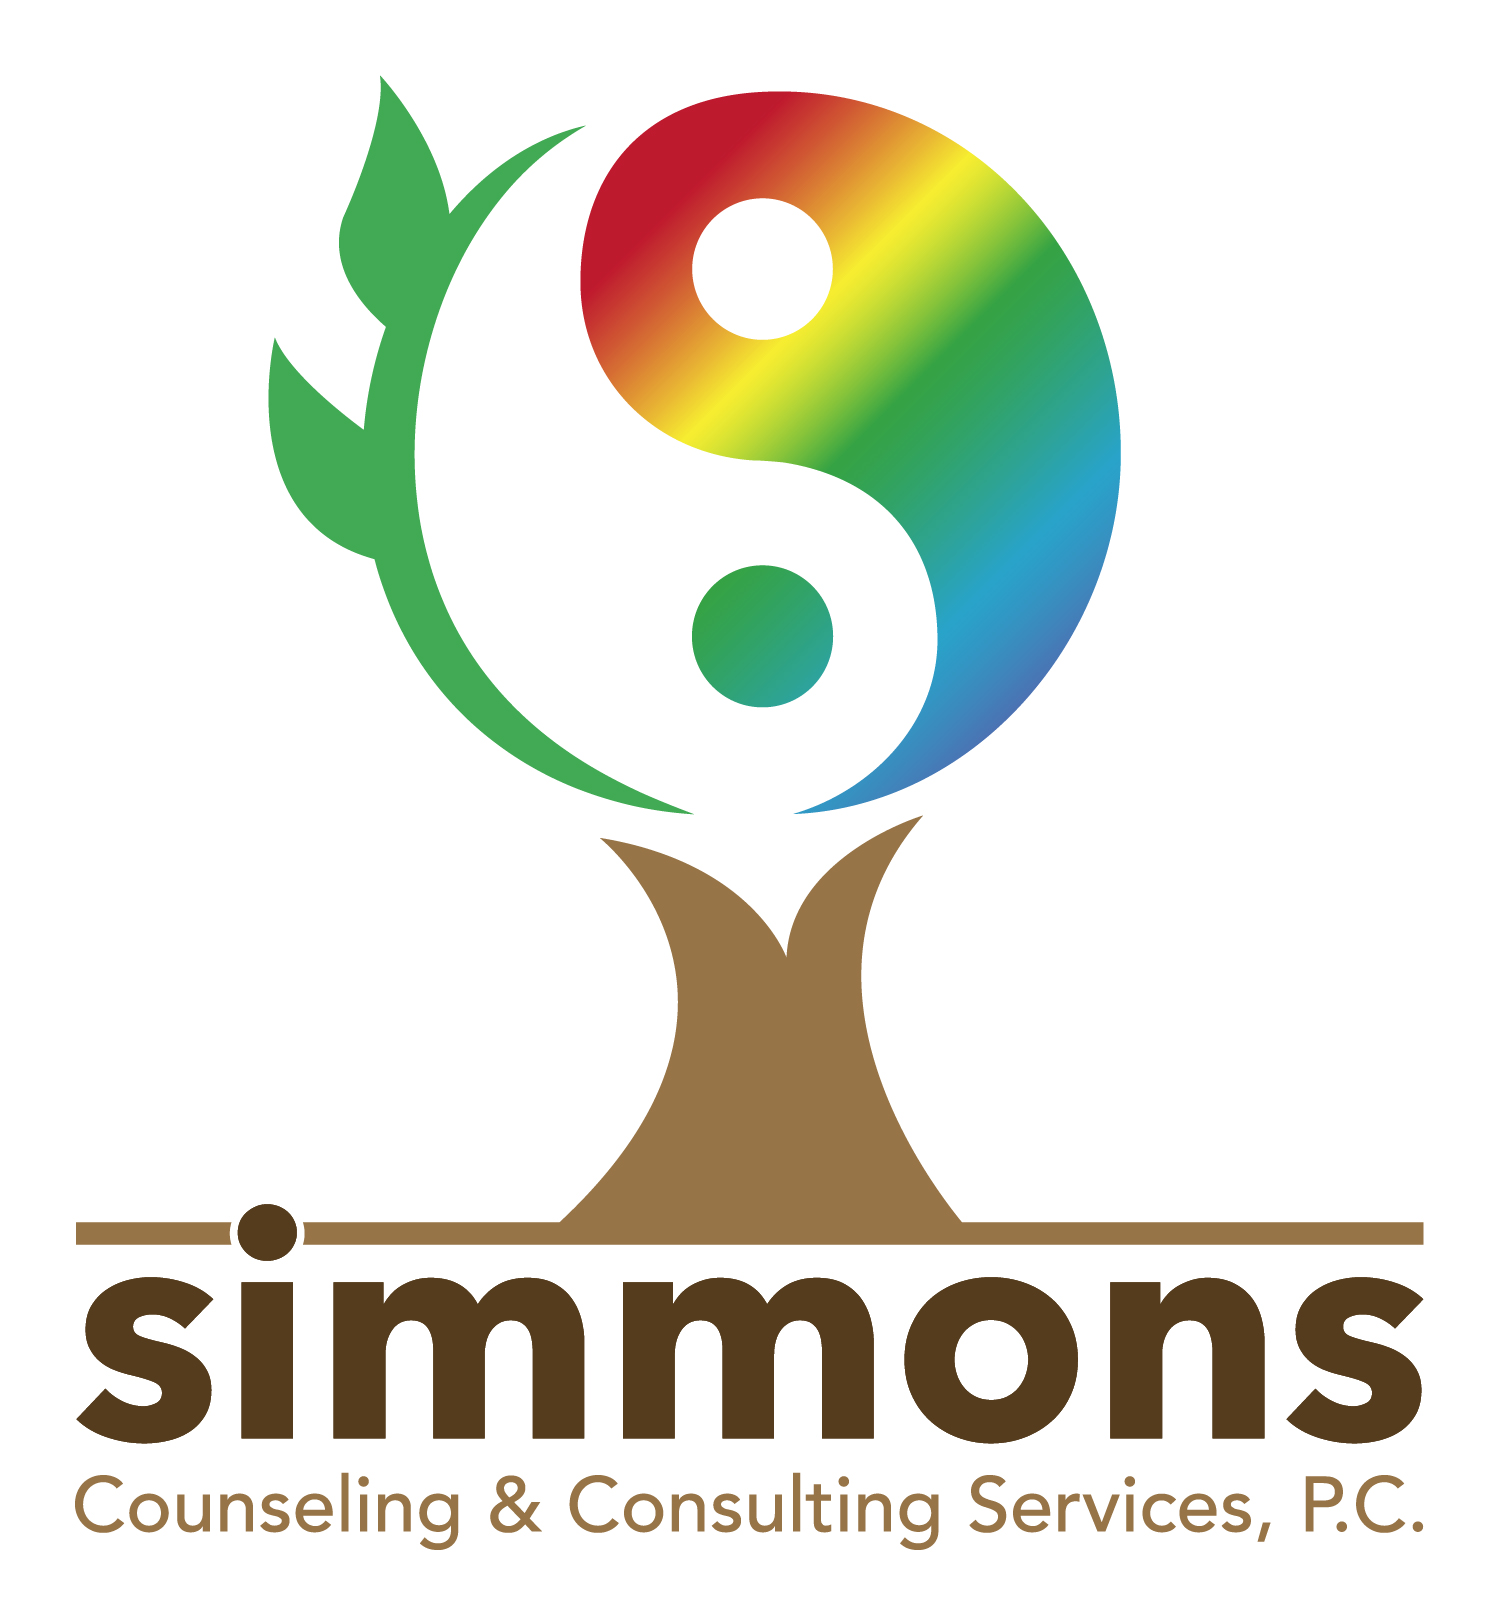 Simmons Counseling & Consulting Services, PC